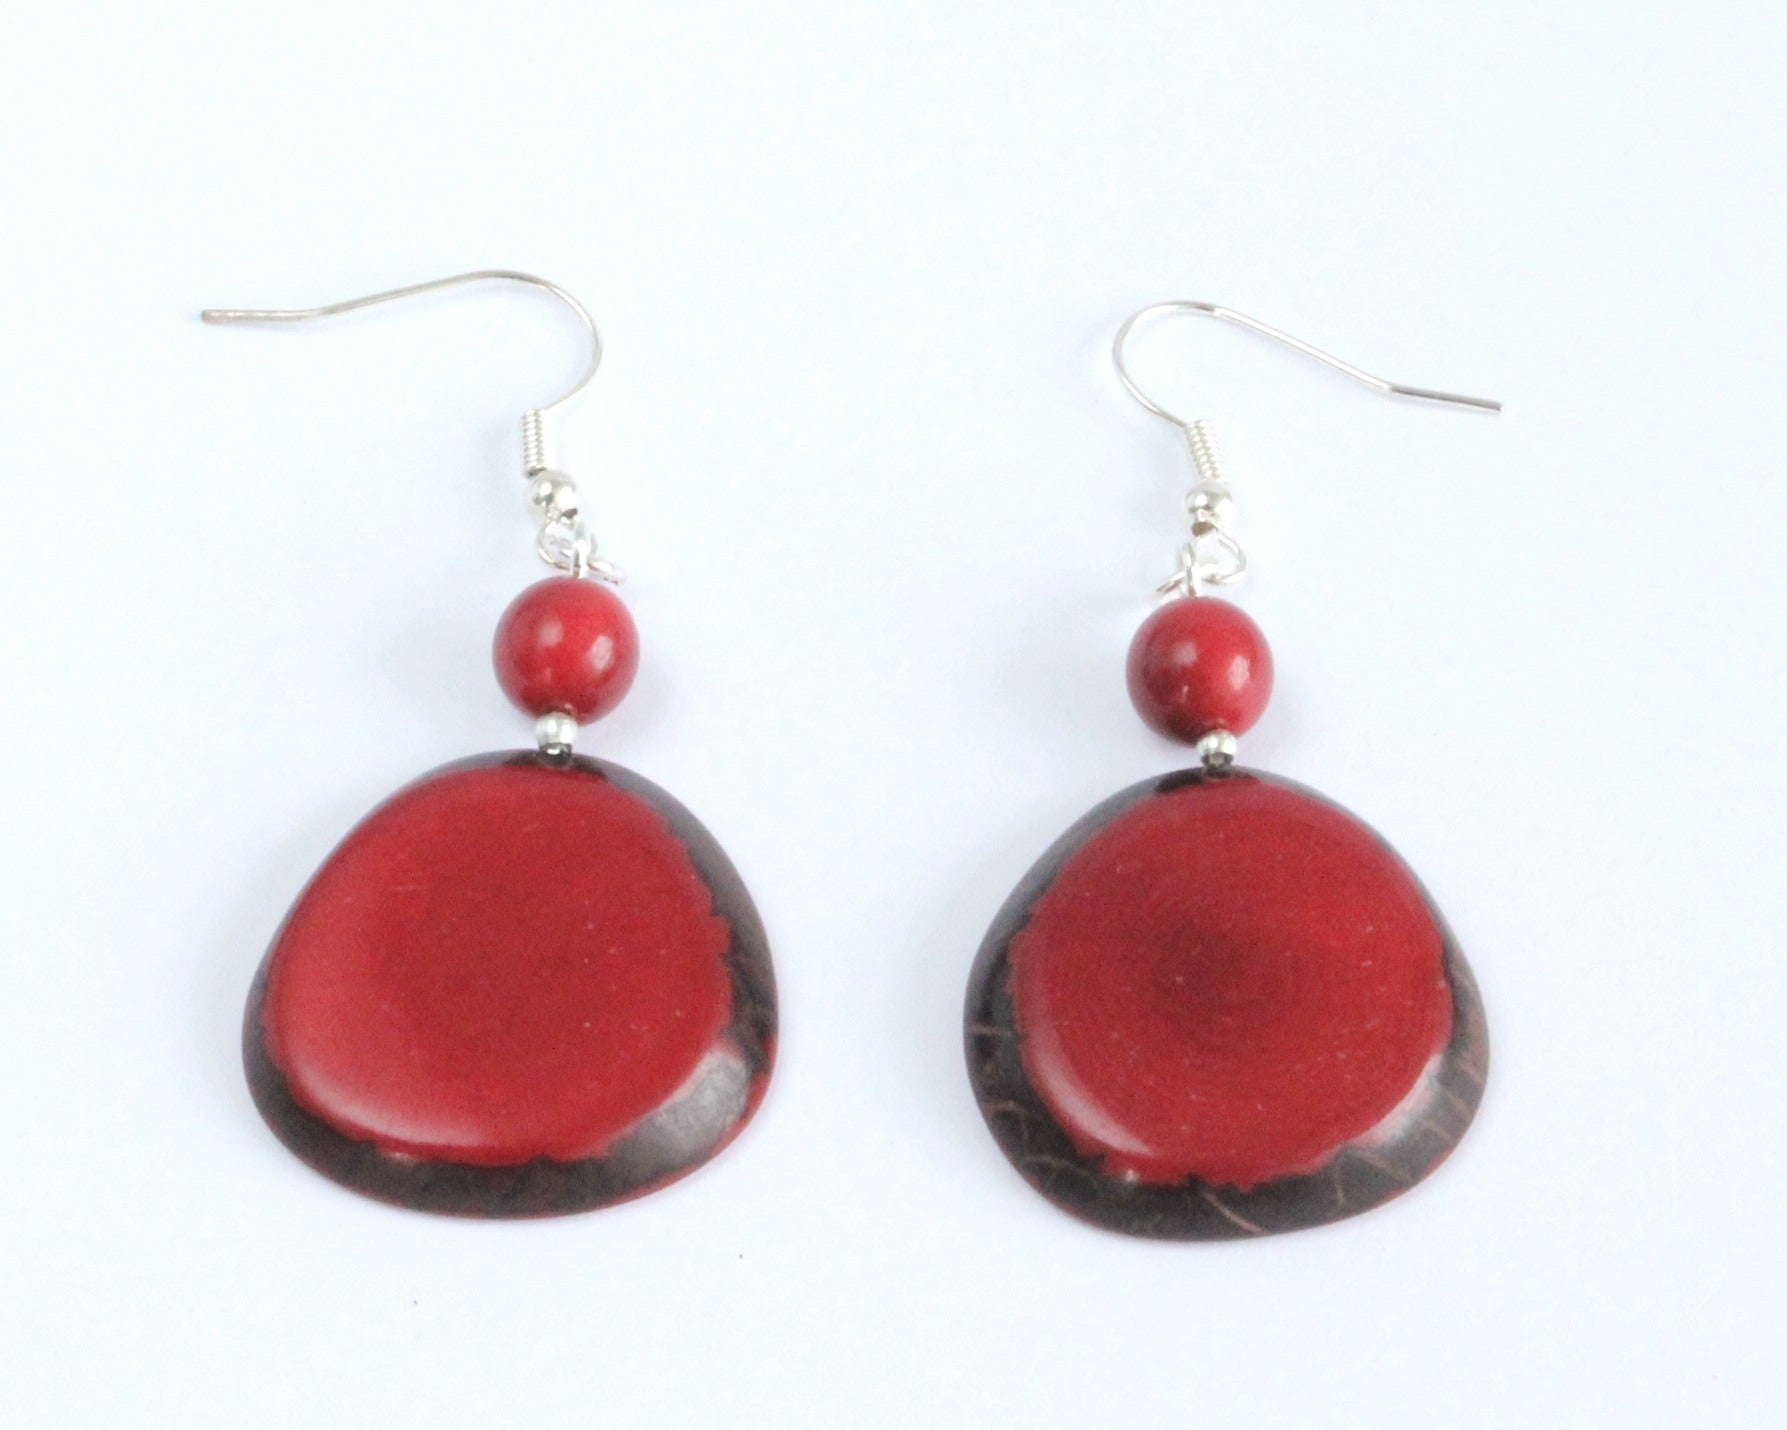 Handmade earring, fish hook, tagua, colourful, red, front